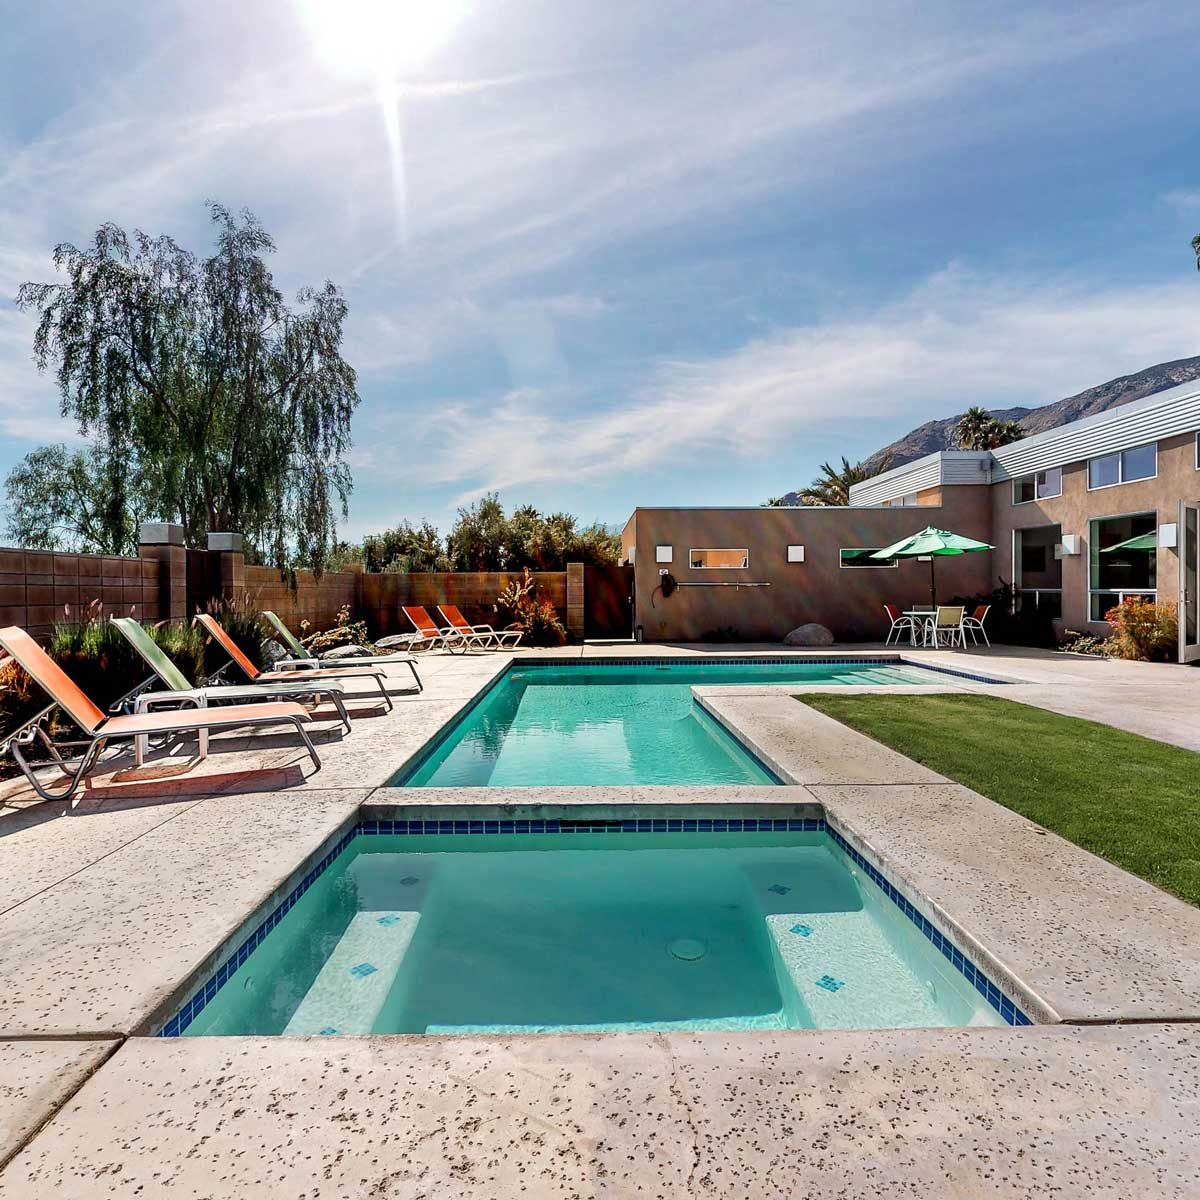 mid century modern style home pool area